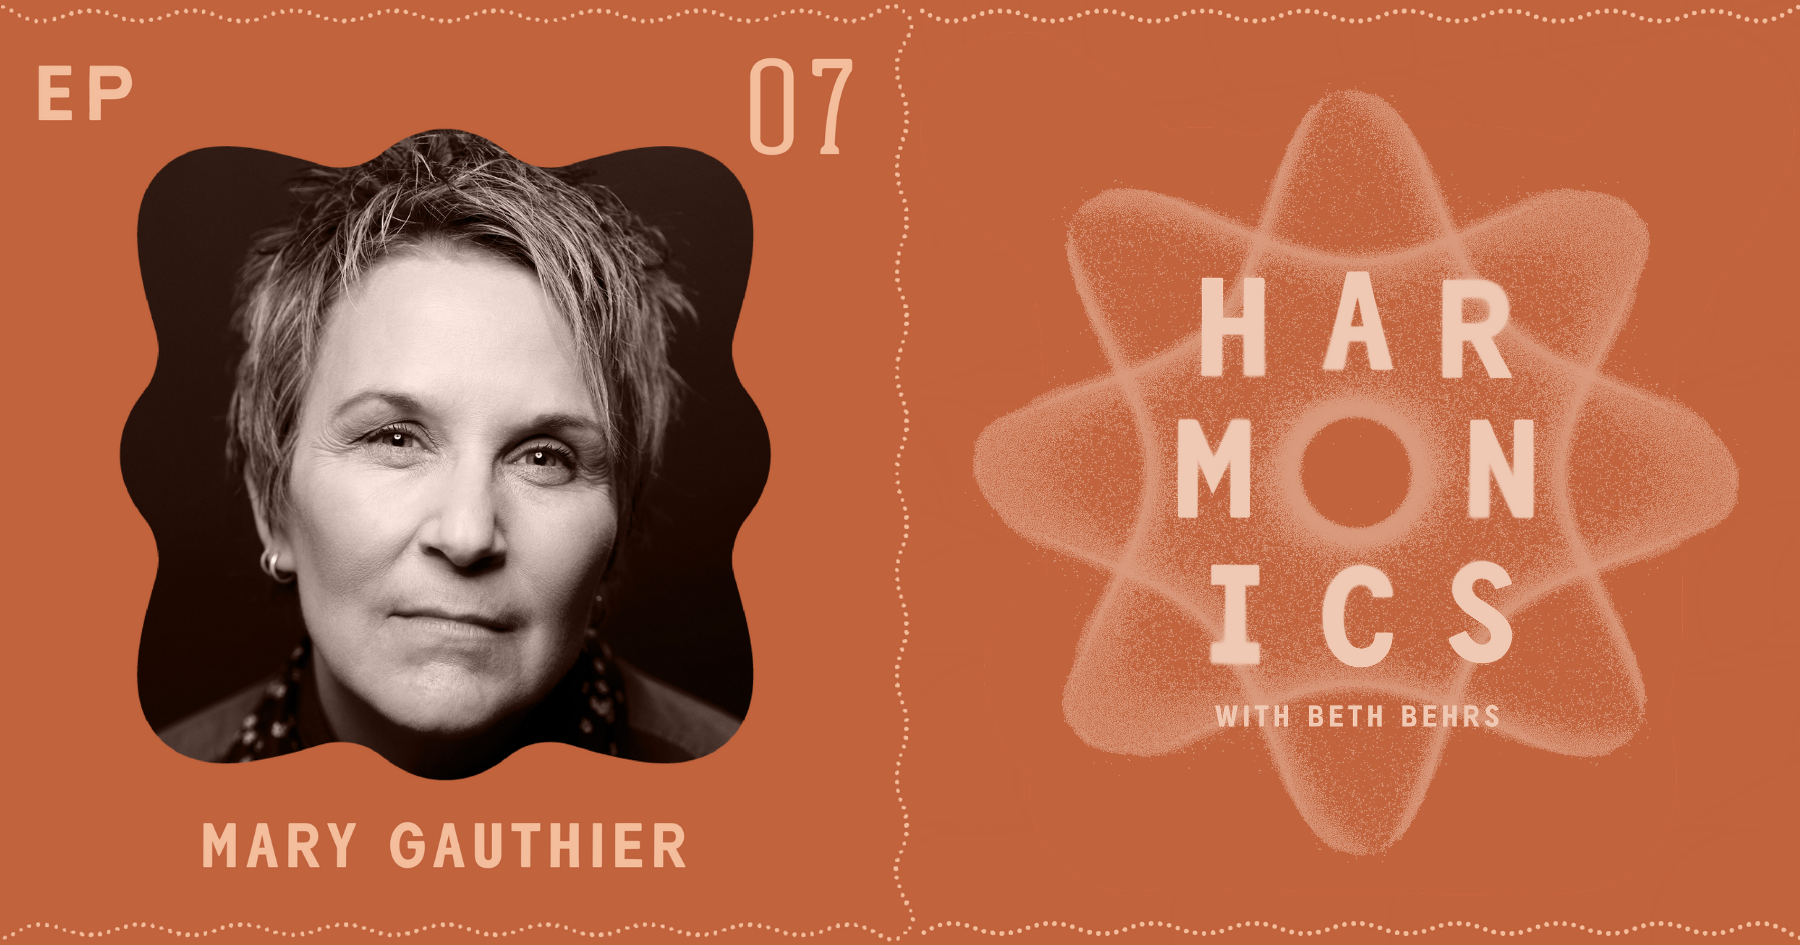 Harmonics with Beth Behrs: Episode 7, Mary Gauthier